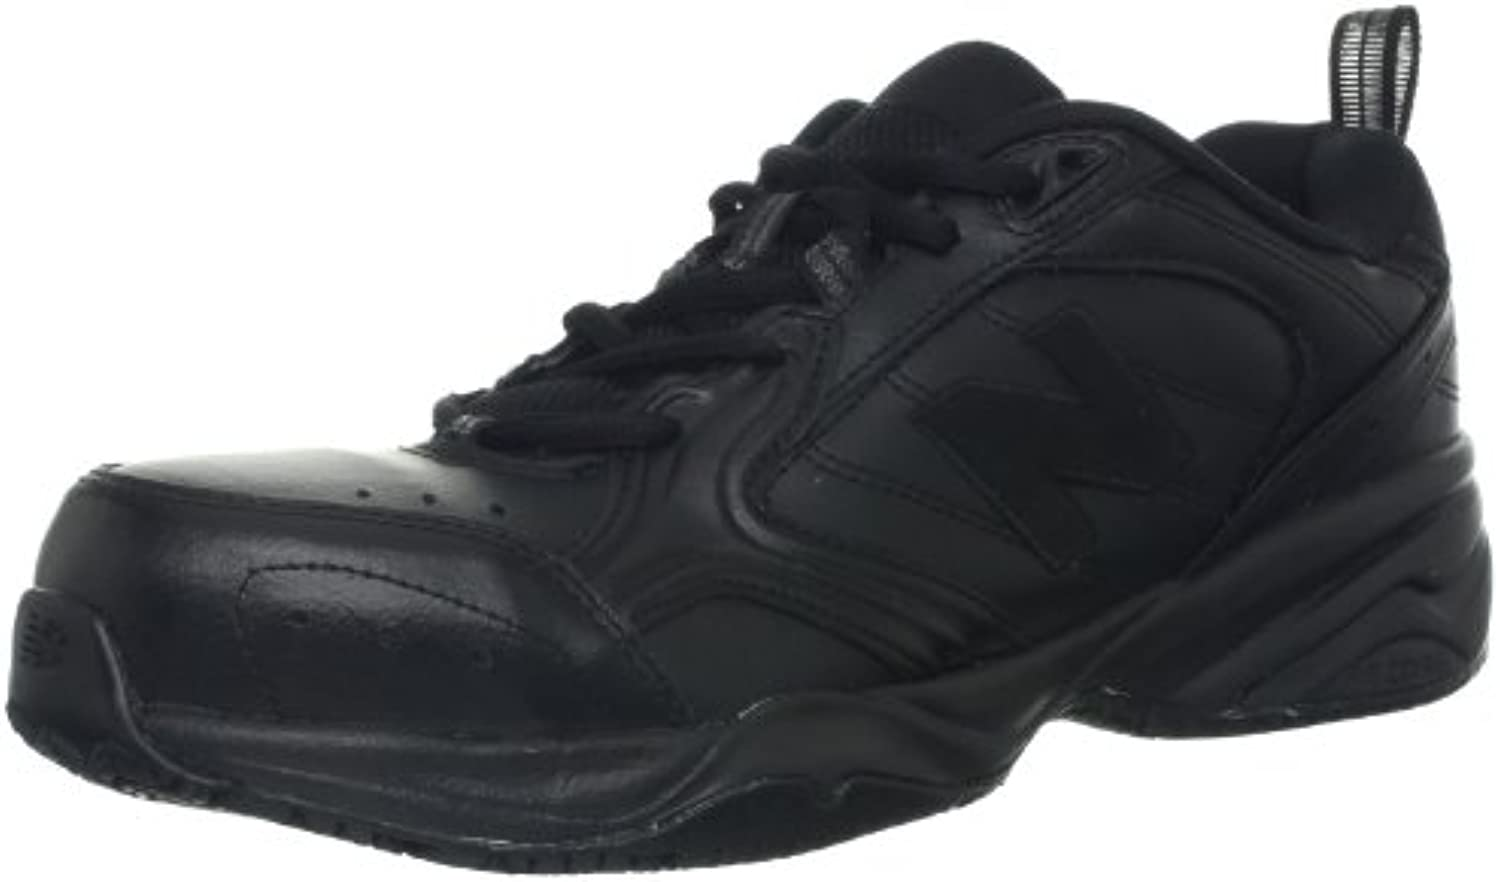 New Balance Men's MID627 Steel-Toe Work Shoe,Black,7.5 4E US